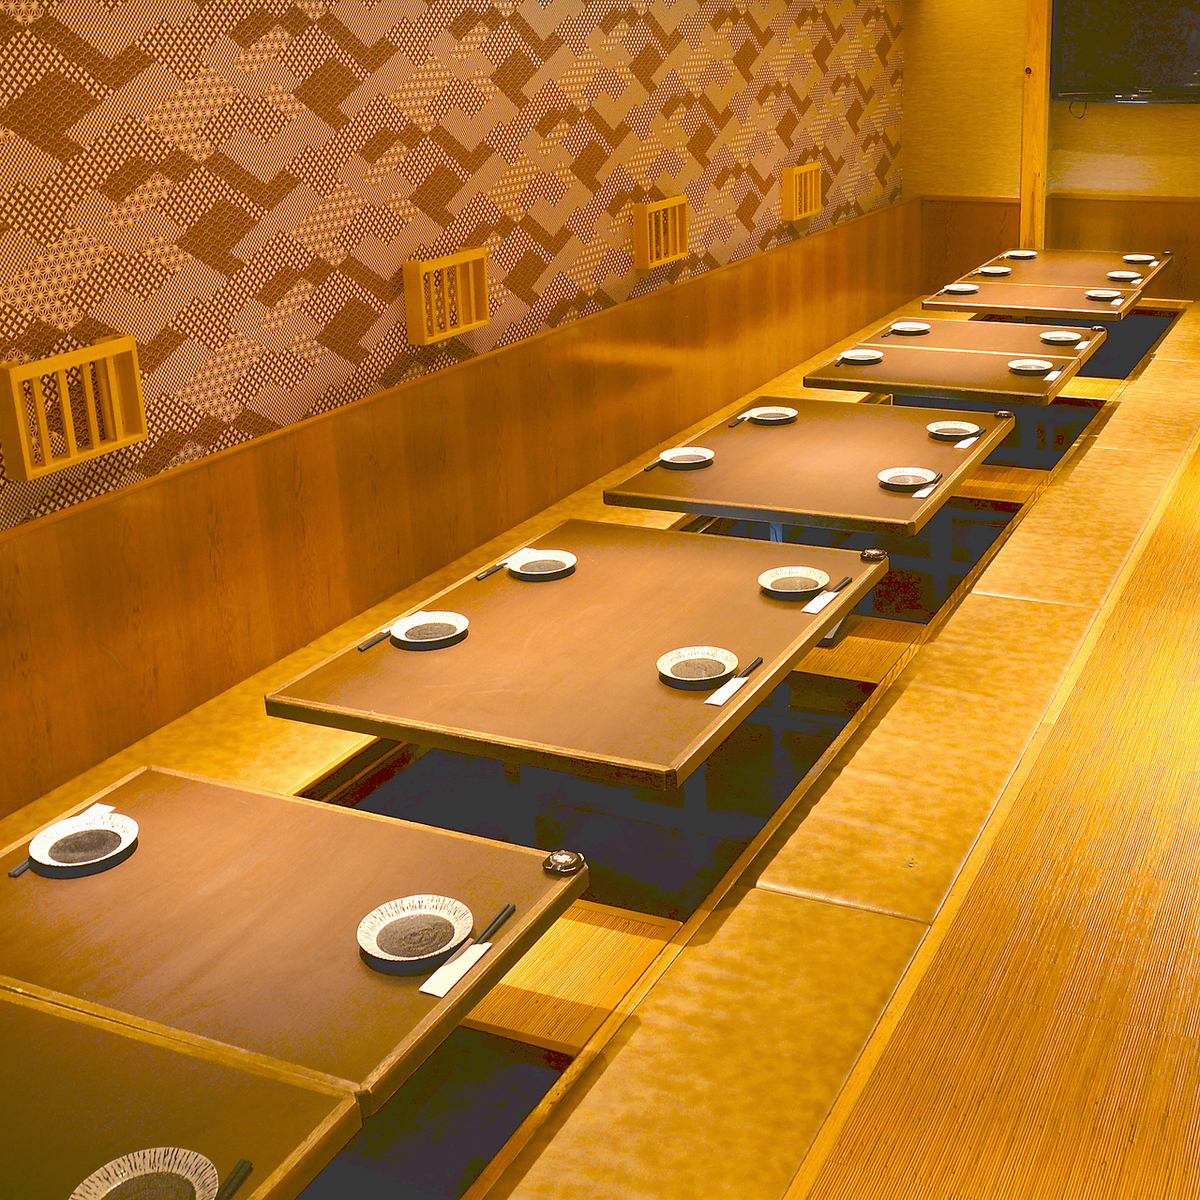 Private room for small groups ♪ To corporate banquets and alumni associations ★ It is preeminent ★ Please use once ☆ 彡 When you are looking for a tavern in Umeda, Japanese modern private room space, Conspiracy - YUI - To ☆ 彡 ☆ 彡 [Umeda All-you-can-drink all-you-can-drink all-you-can-drink night view]